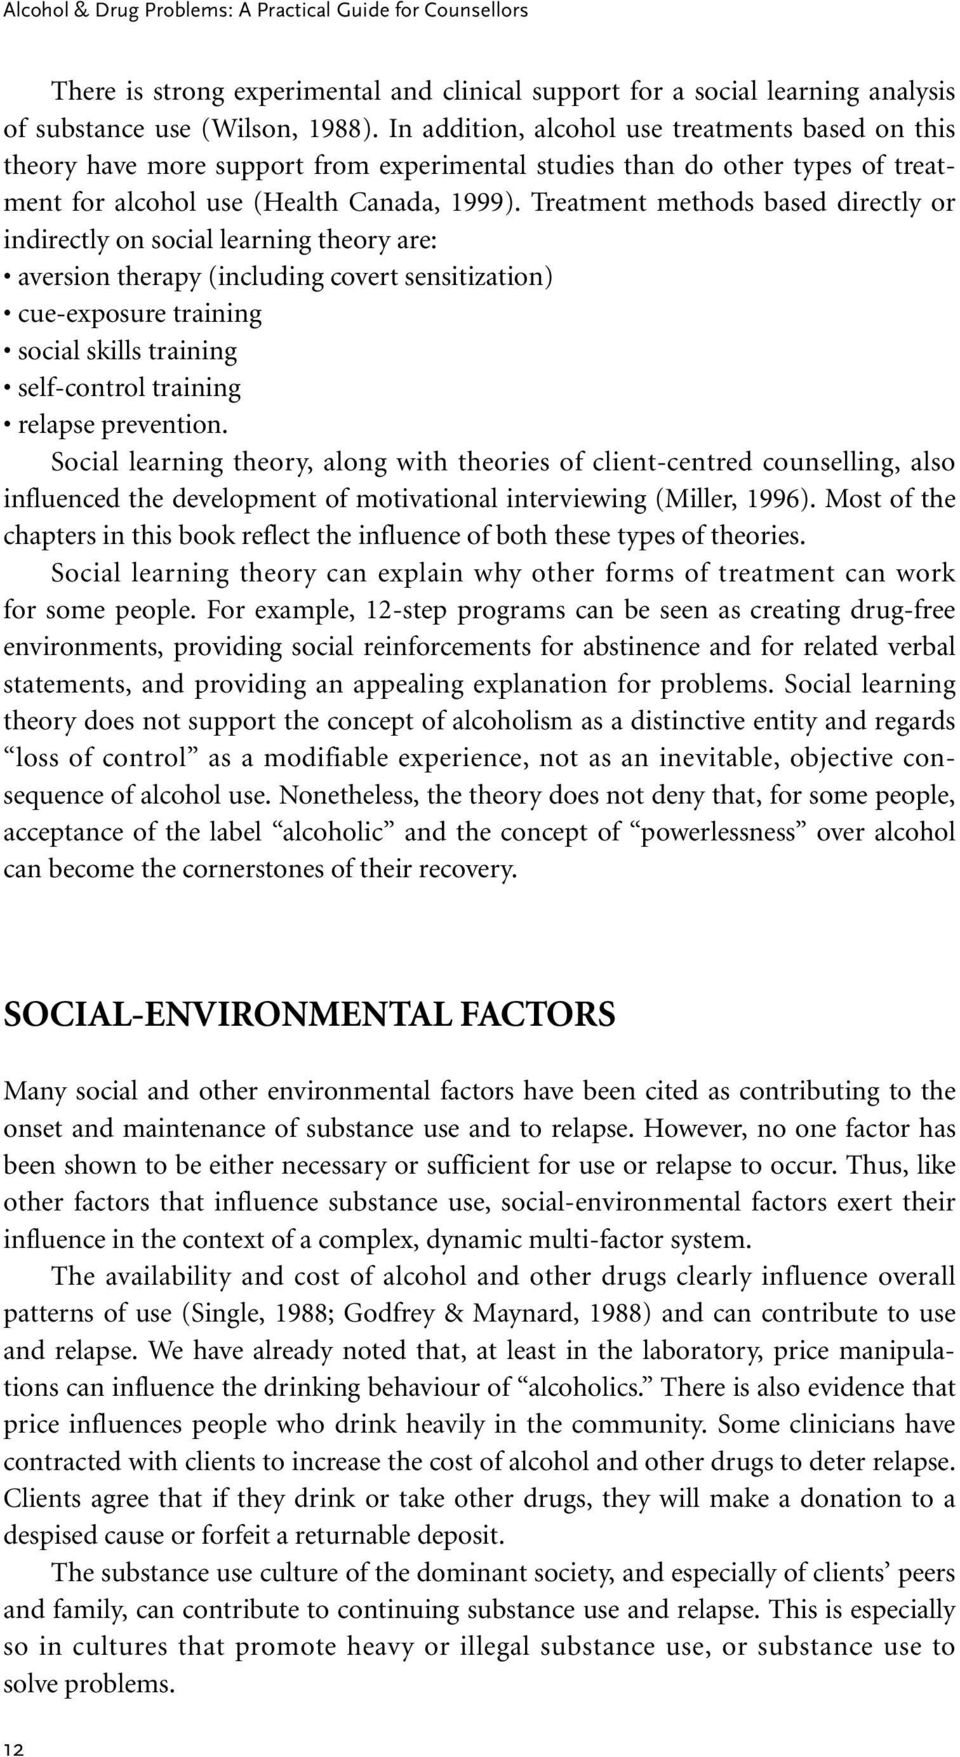 Treatment methods based directly or indirectly on social learning theory are: aversion therapy (including covert sensitization) cue-exposure training social skills training self-control training